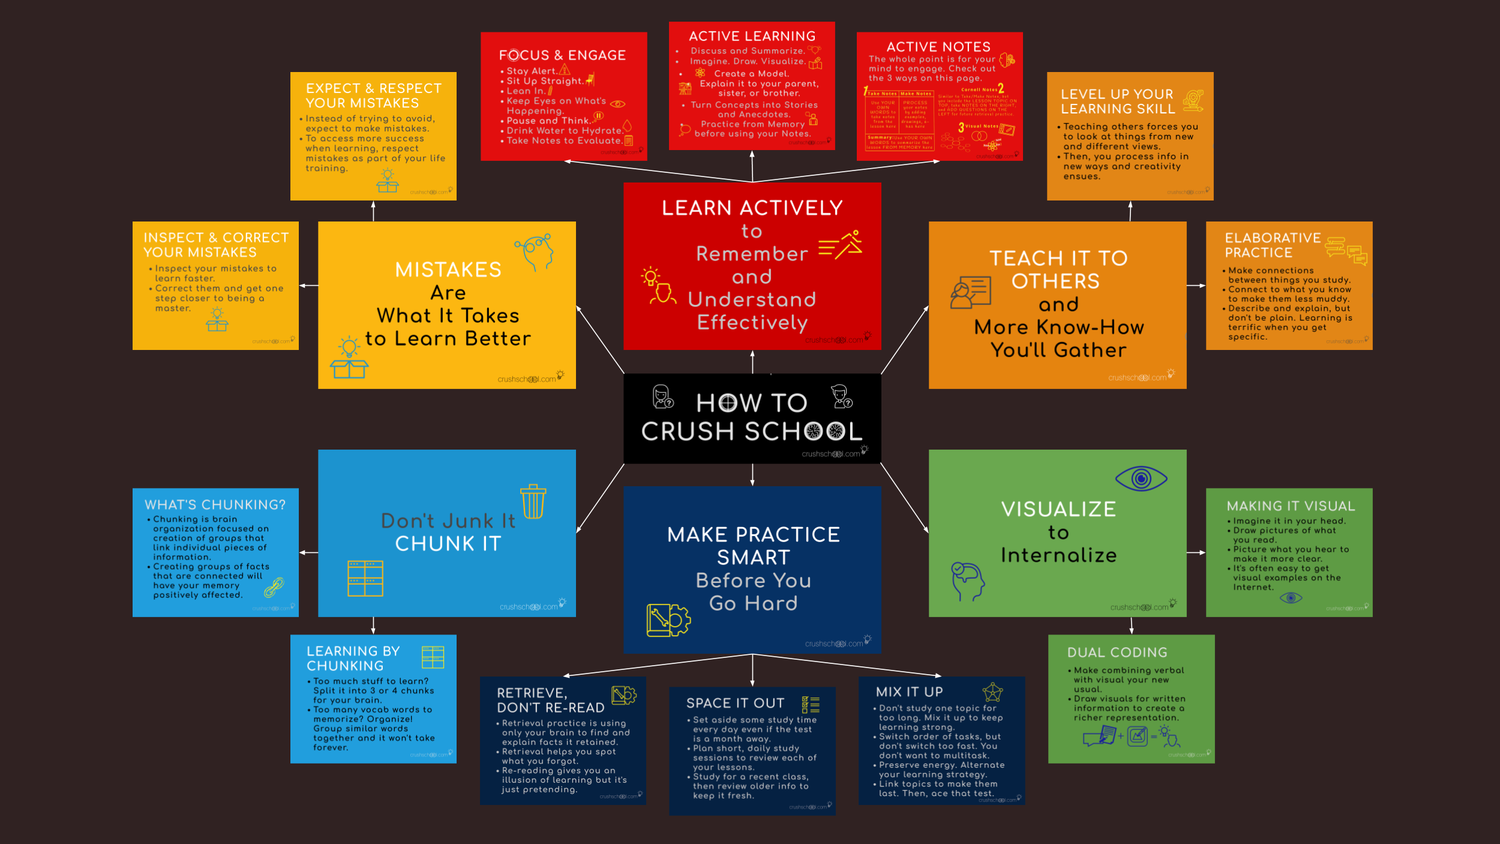 CRUSH SCHOOL - 3 Strategies to Help Students Learn More Effectively